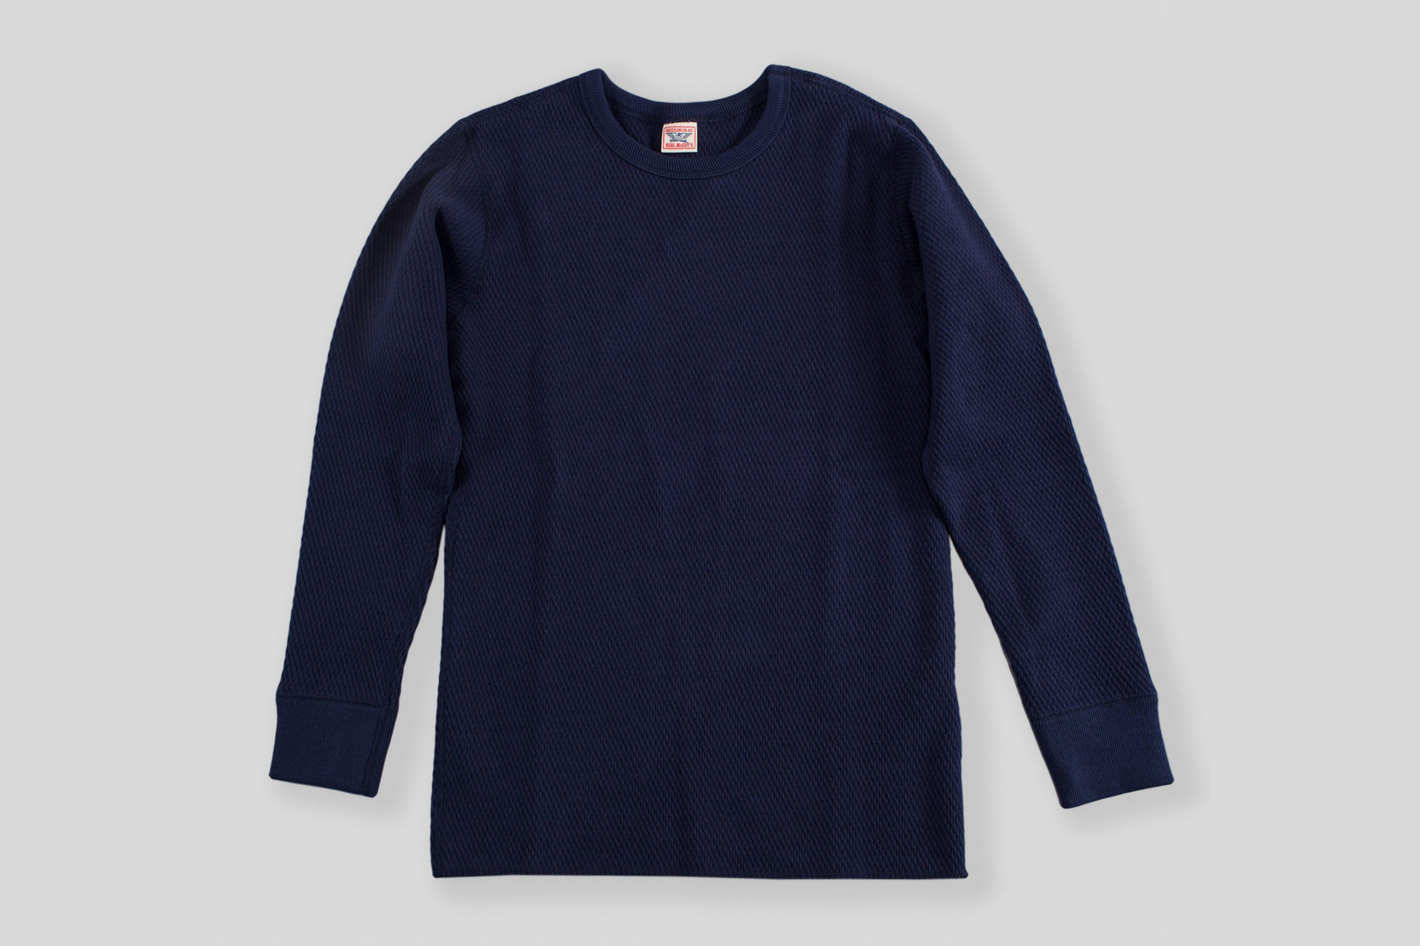 8767c90a The Real McCoy's Military Thermal Shirt, Navy